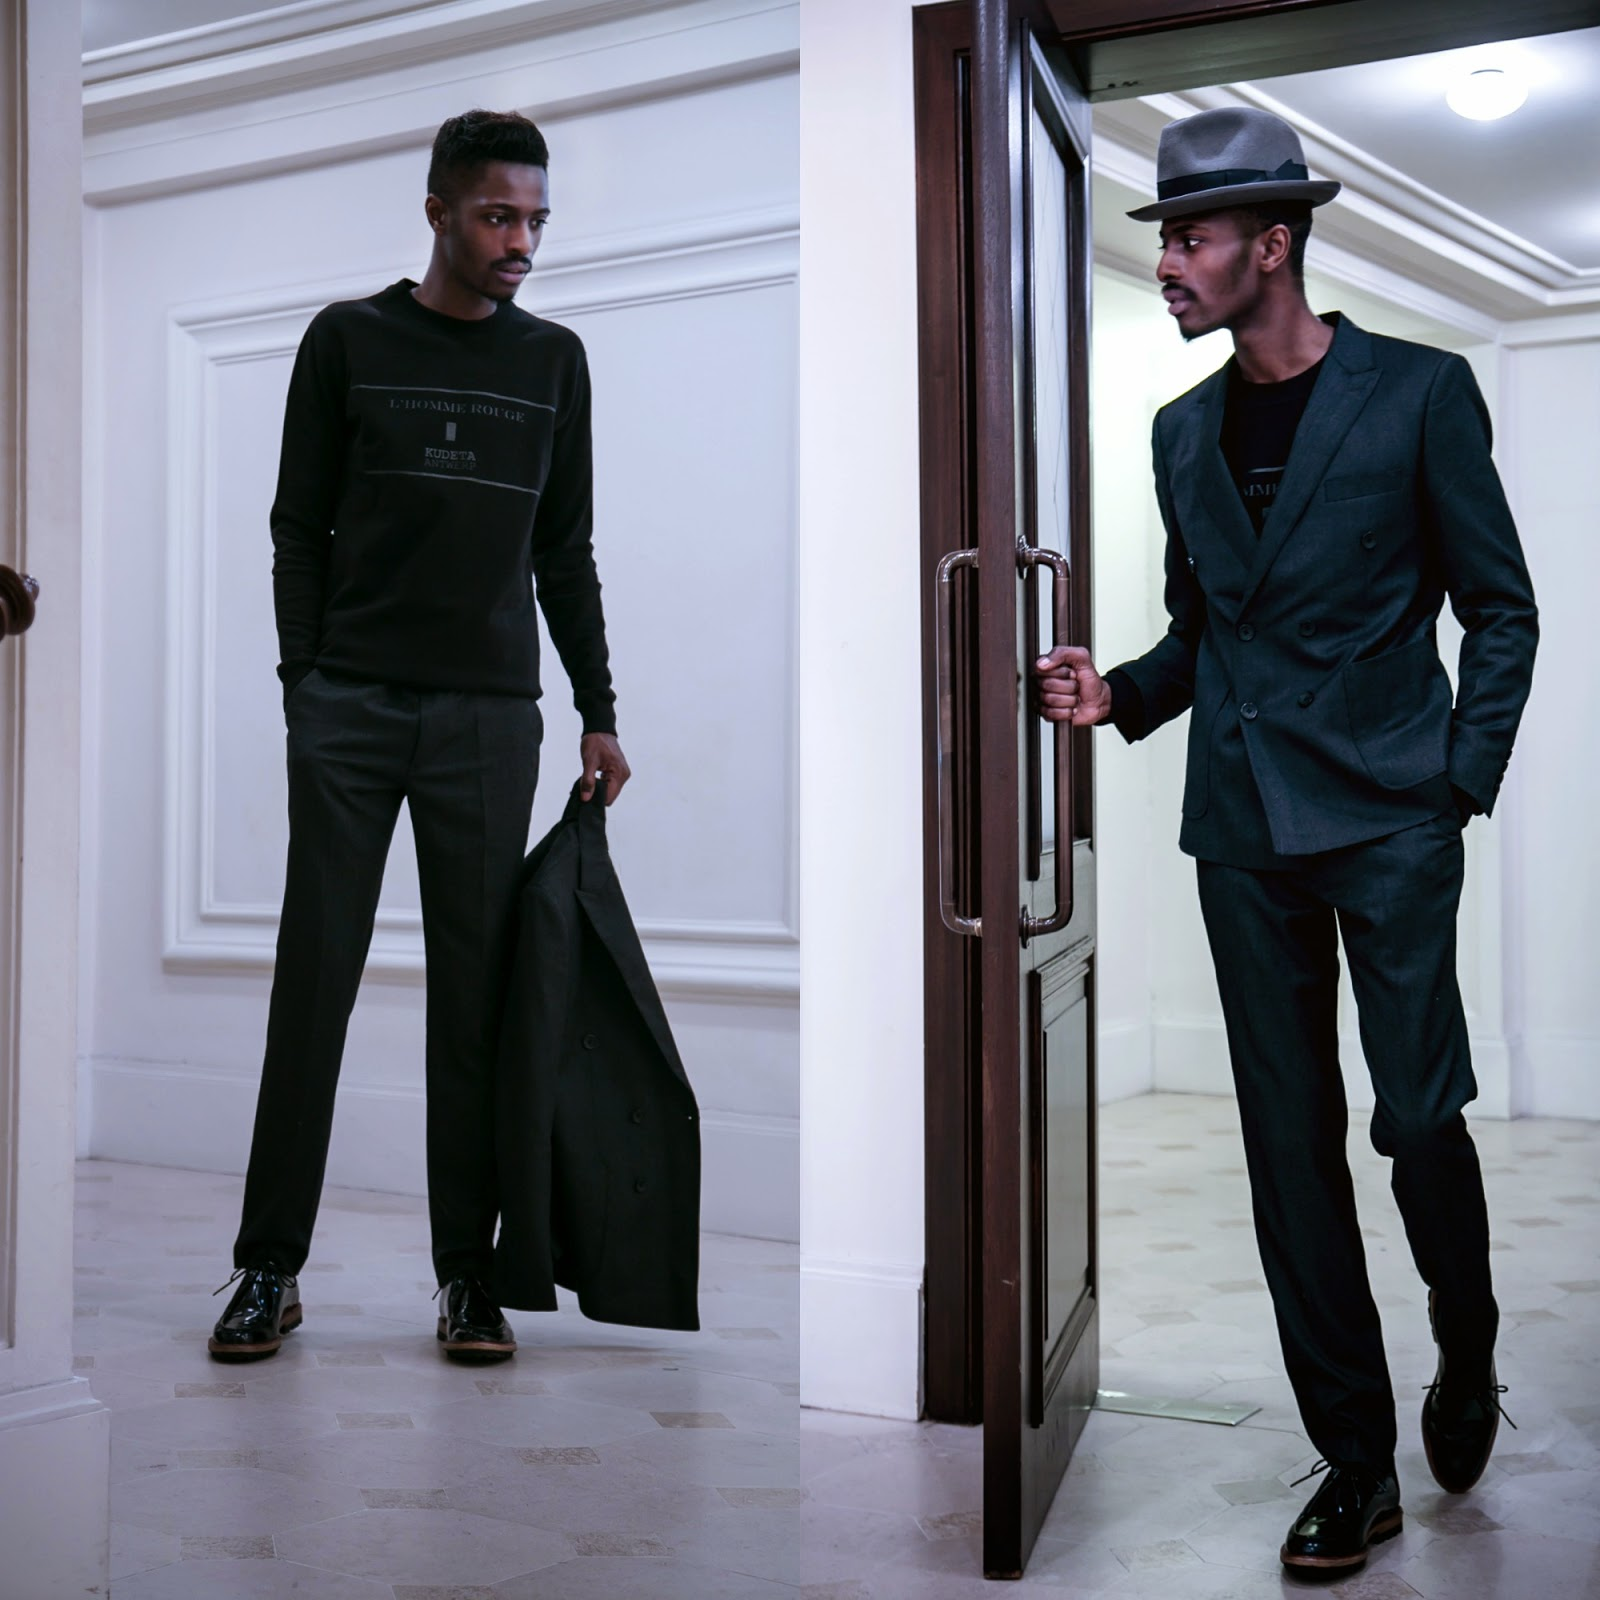 HOW TO CAHSMERE SUIT BLACK SWEATER SHOES